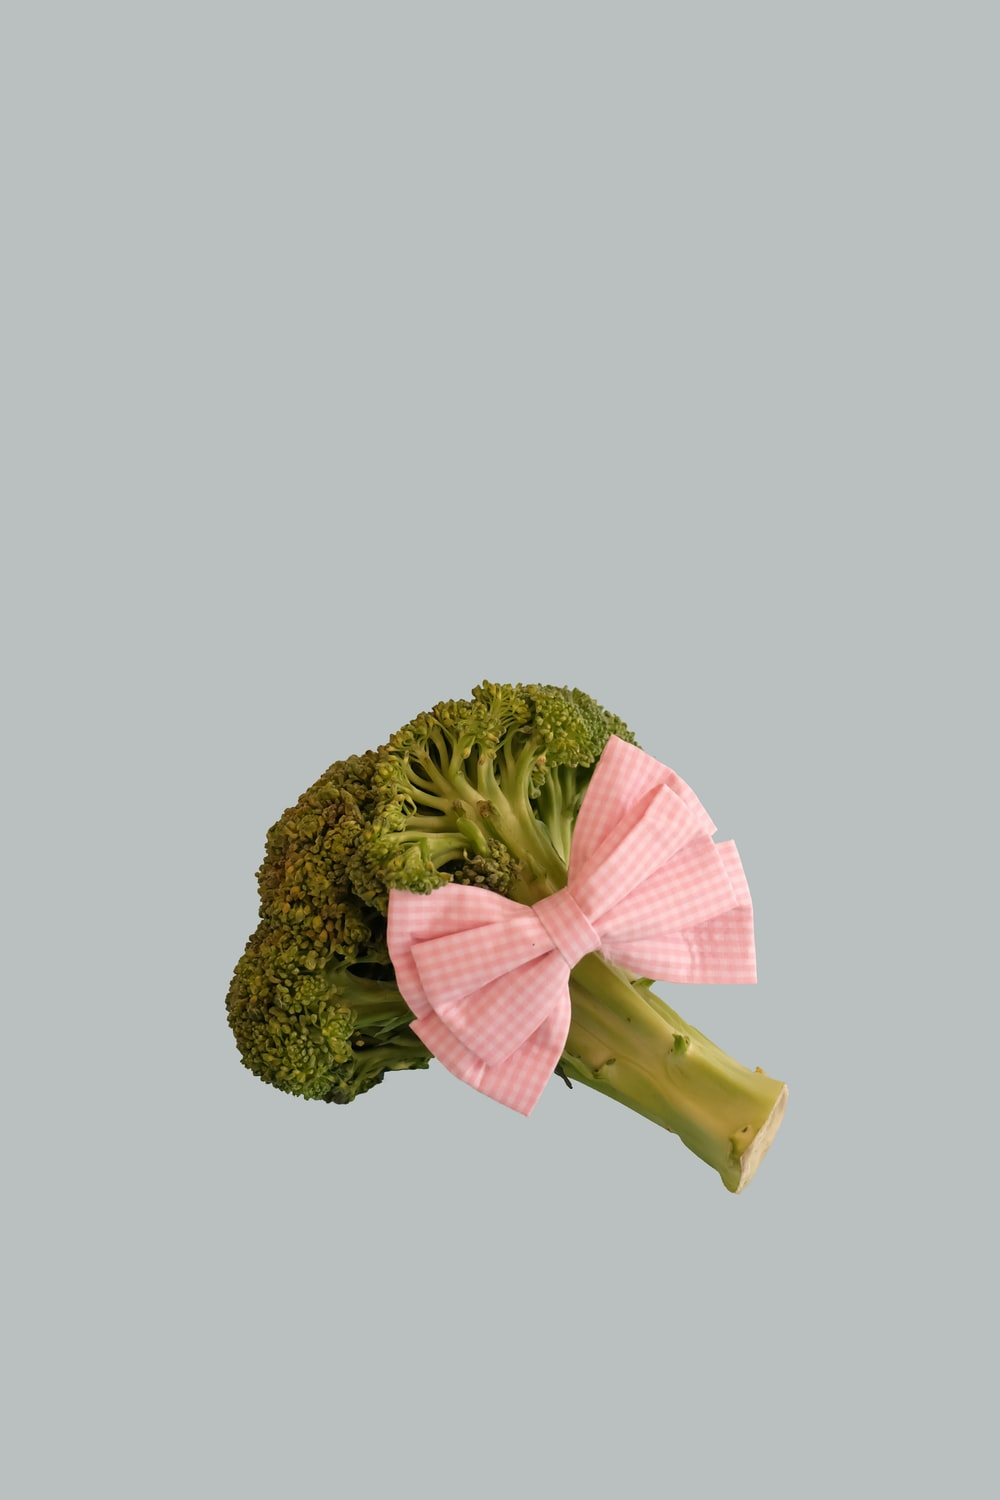 broccoli vegetable with pink ribbon